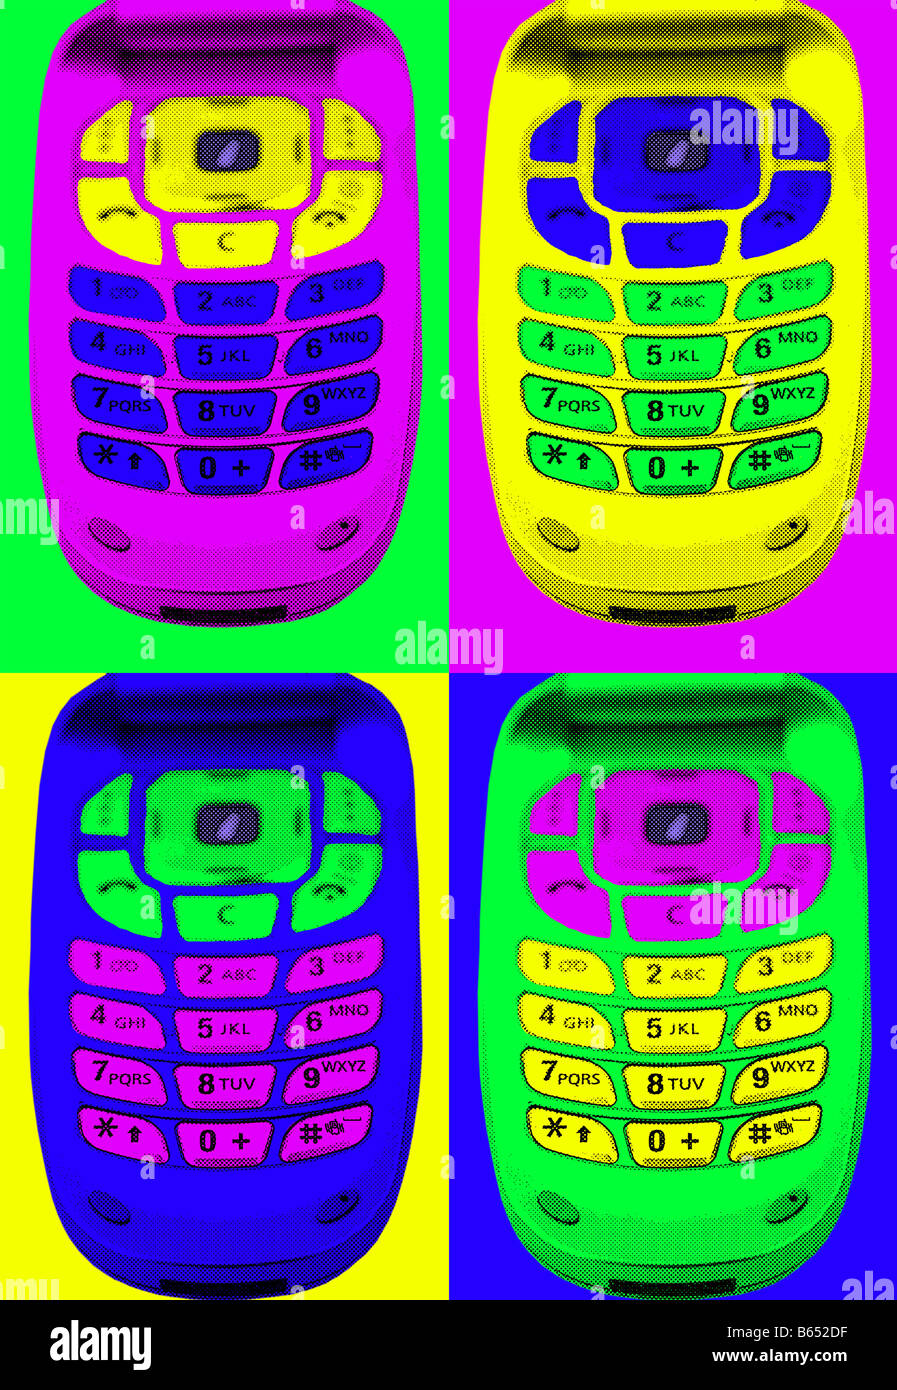 mobile phones in pop art style - Stock Image